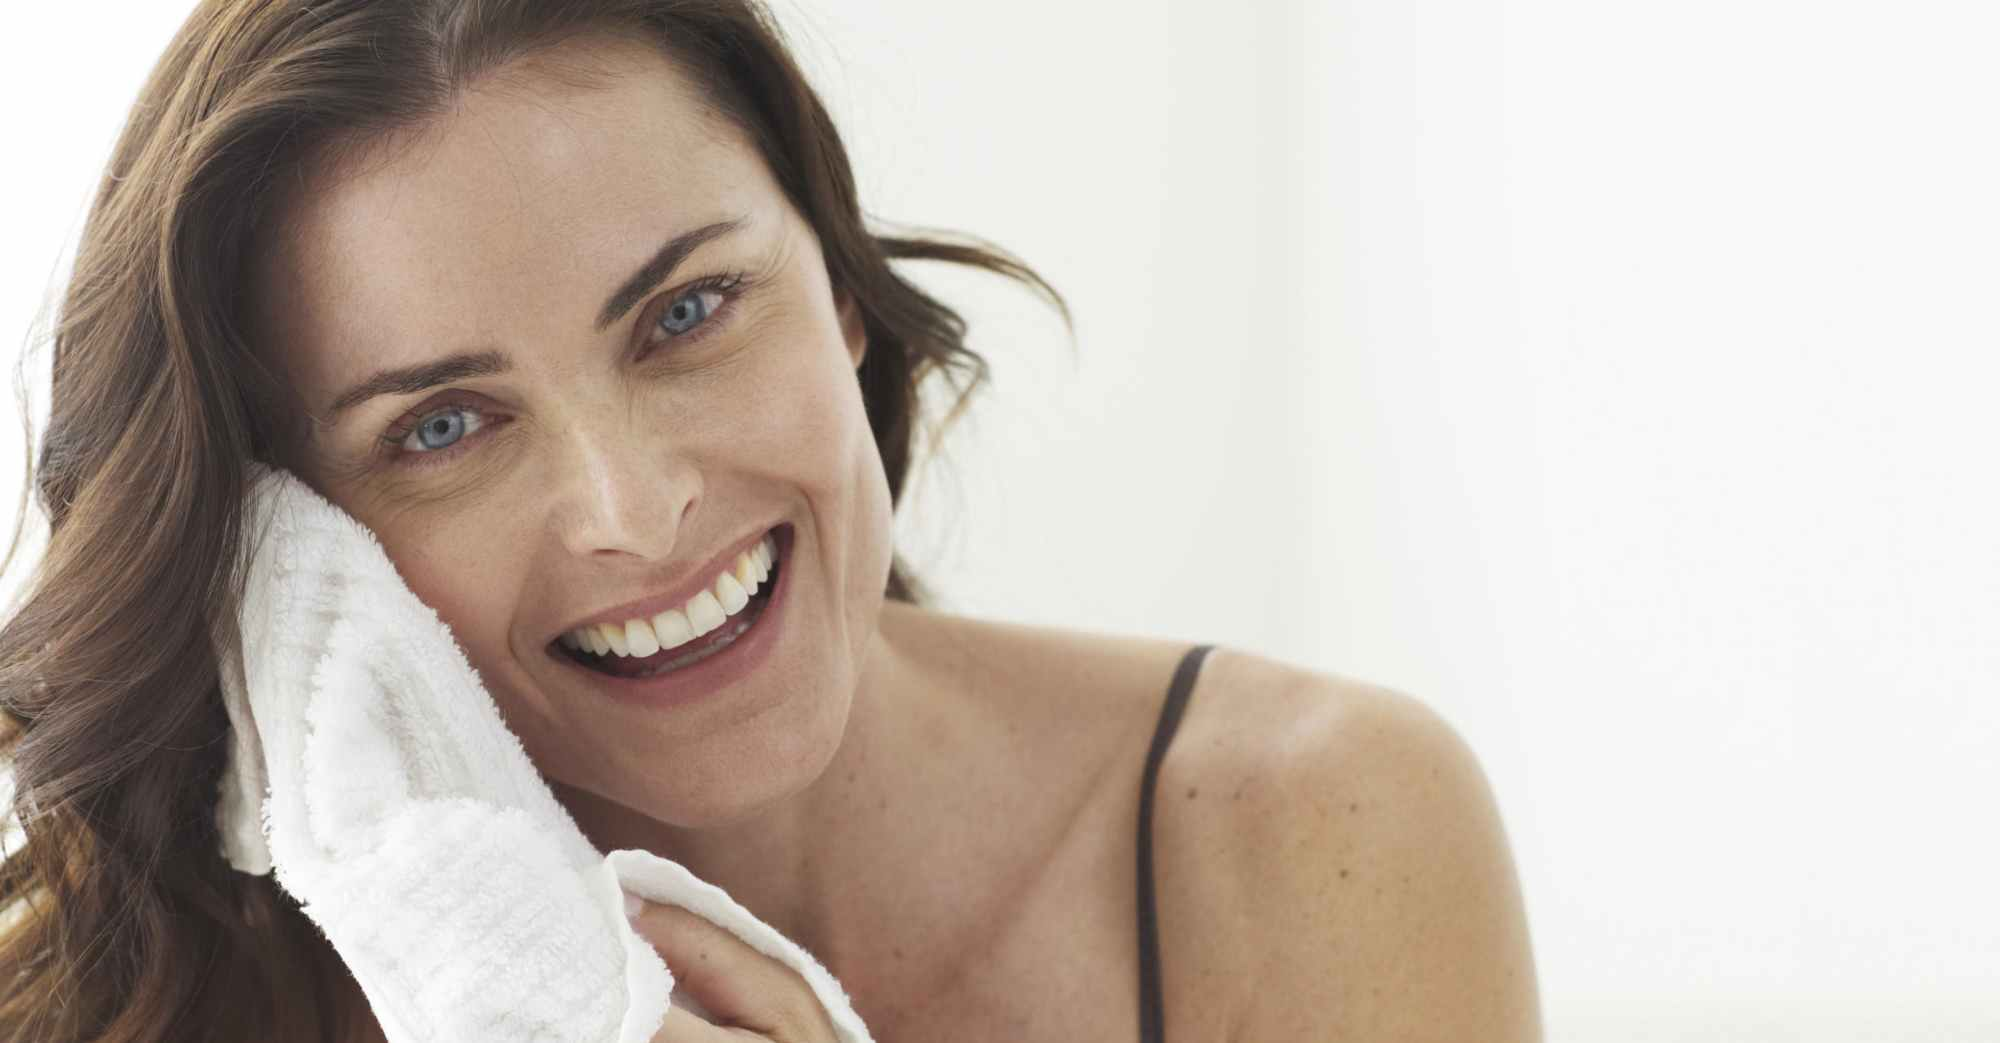 All you have to know about Retinol and Retinoids (Retin-A and Retinoic Acids)